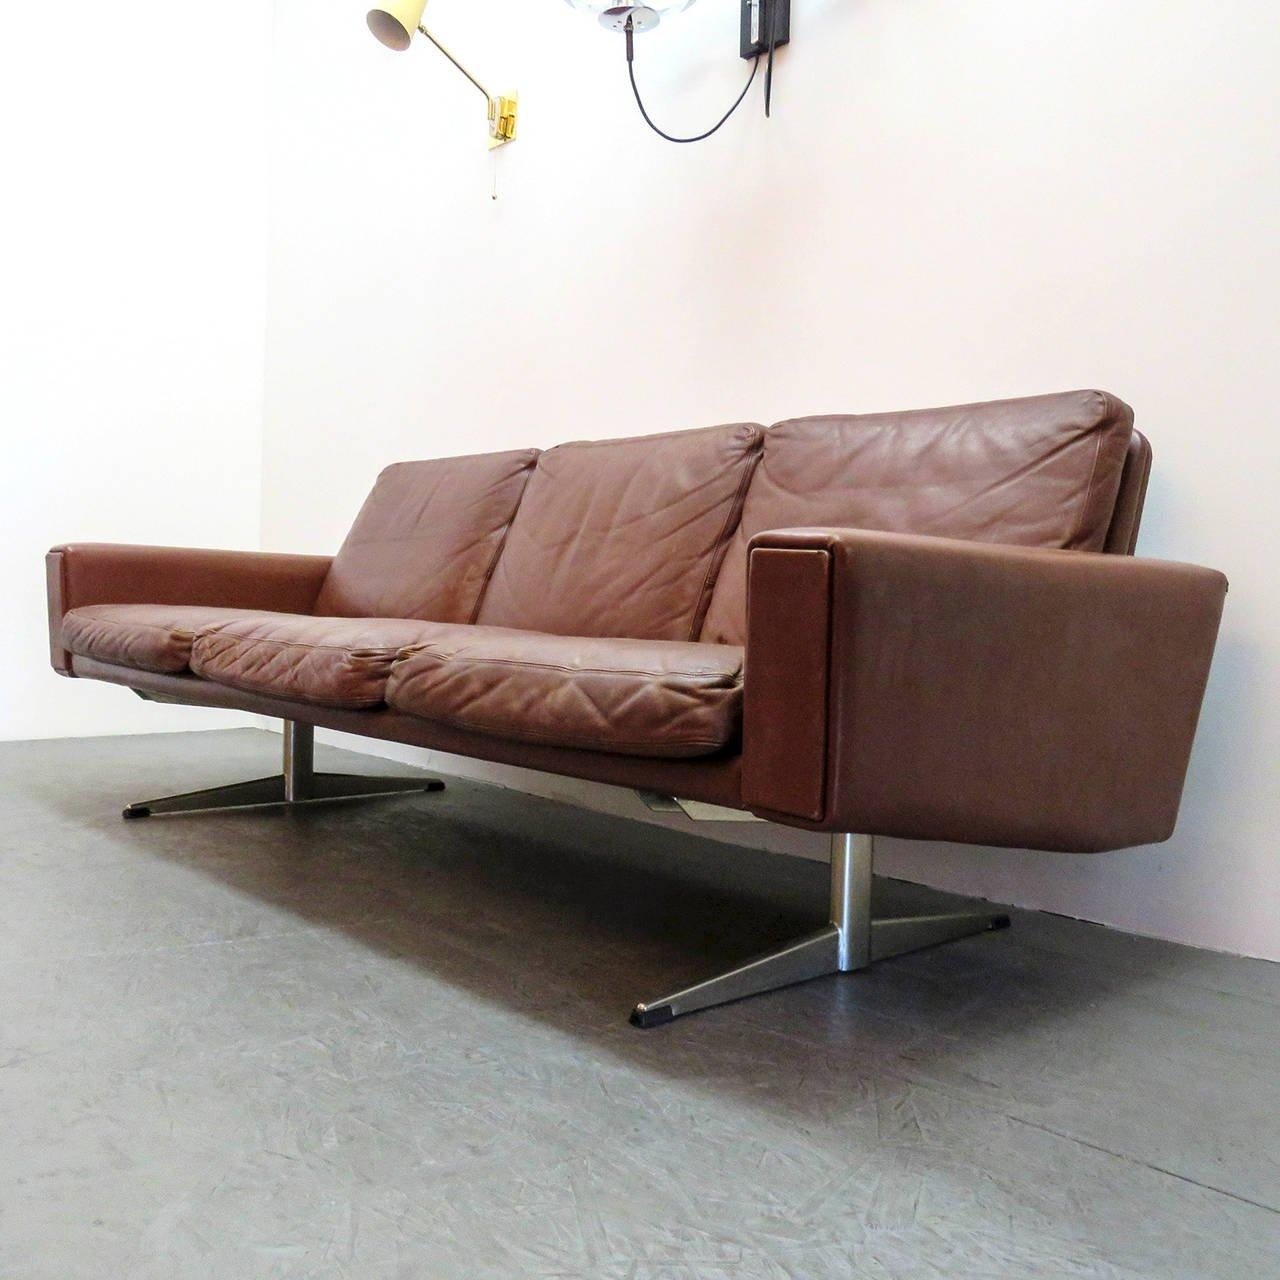 Danish Leather Sofa, 1960 For Sale At 1Stdibs Throughout Danish Leather Sofas (Image 9 of 20)